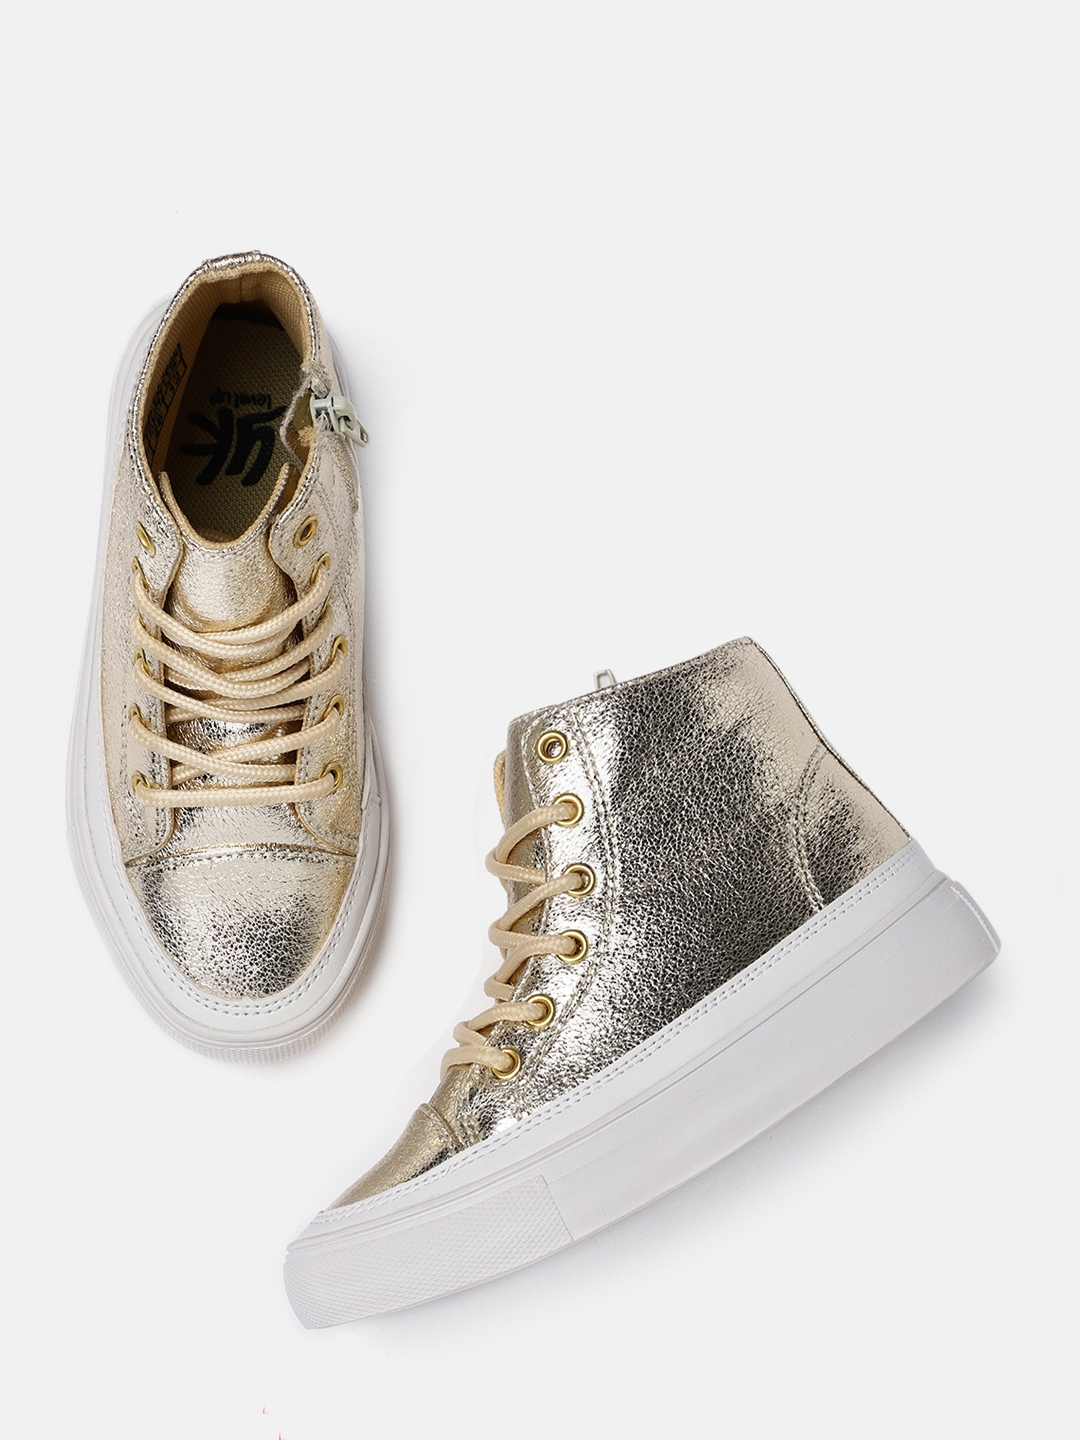 a74dc7a78945 Buy YK Girls Gold Toned Mid Top Sneakers - Casual Shoes for Girls ...